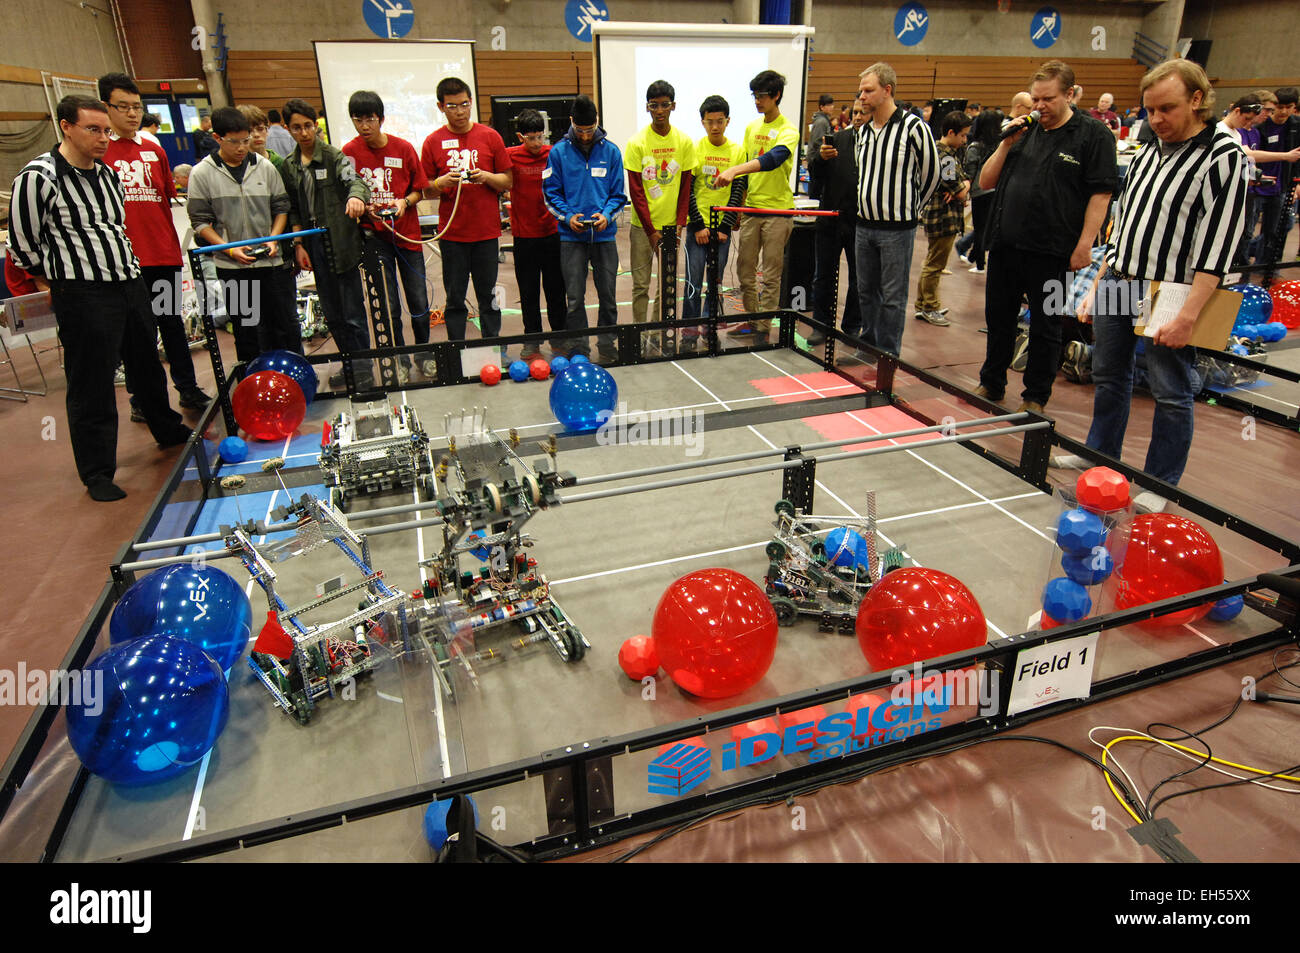 Vancouver 6th Mar 2015 Students Take Part In The 2015 Vex